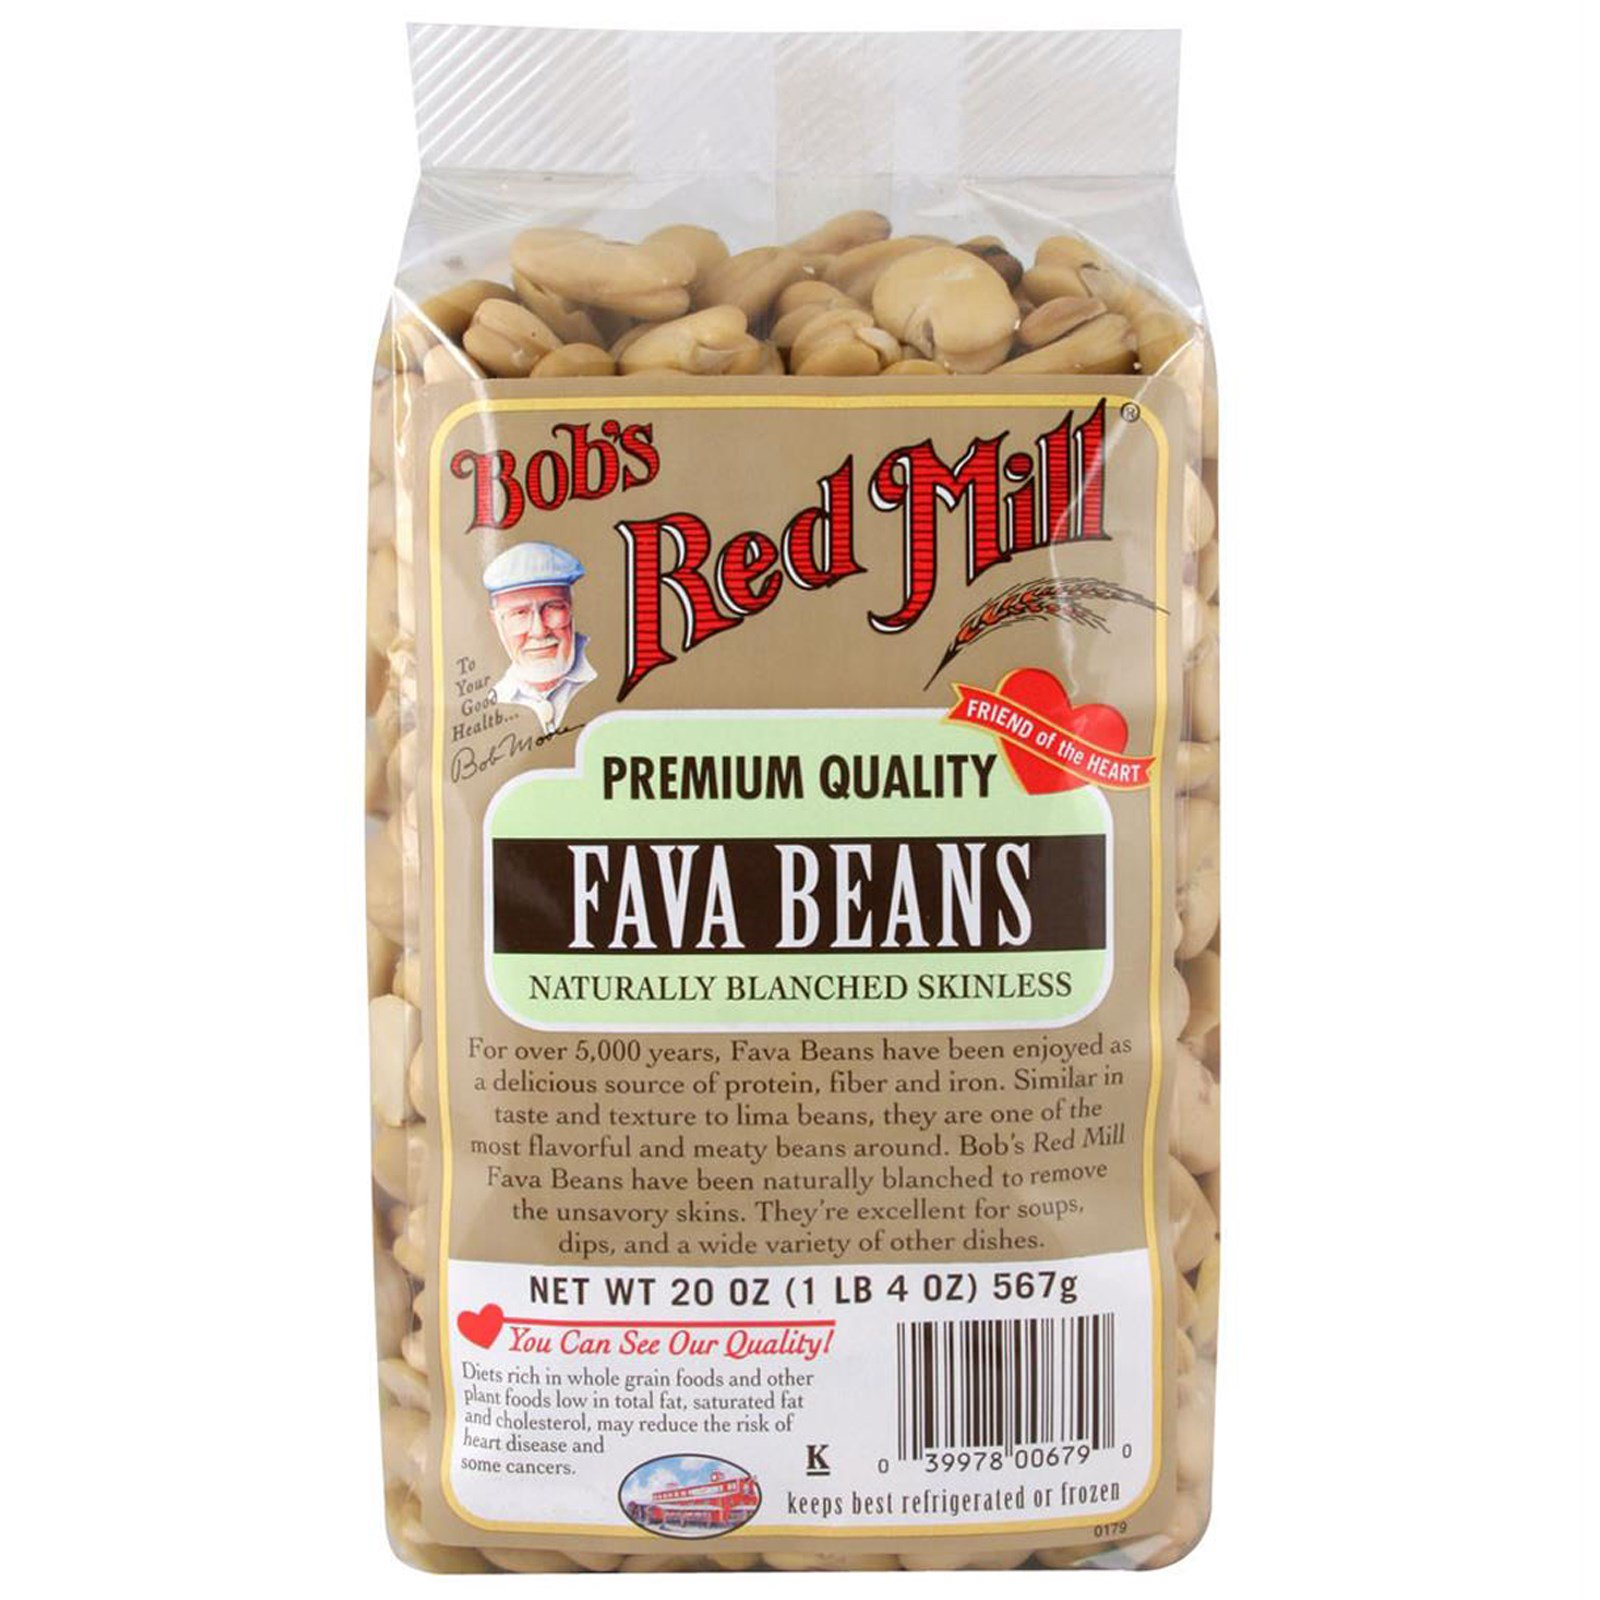 Bob's Red Mill, Fava Beans, Naturally Blanched Skinless, 20 oz (pack of 3)